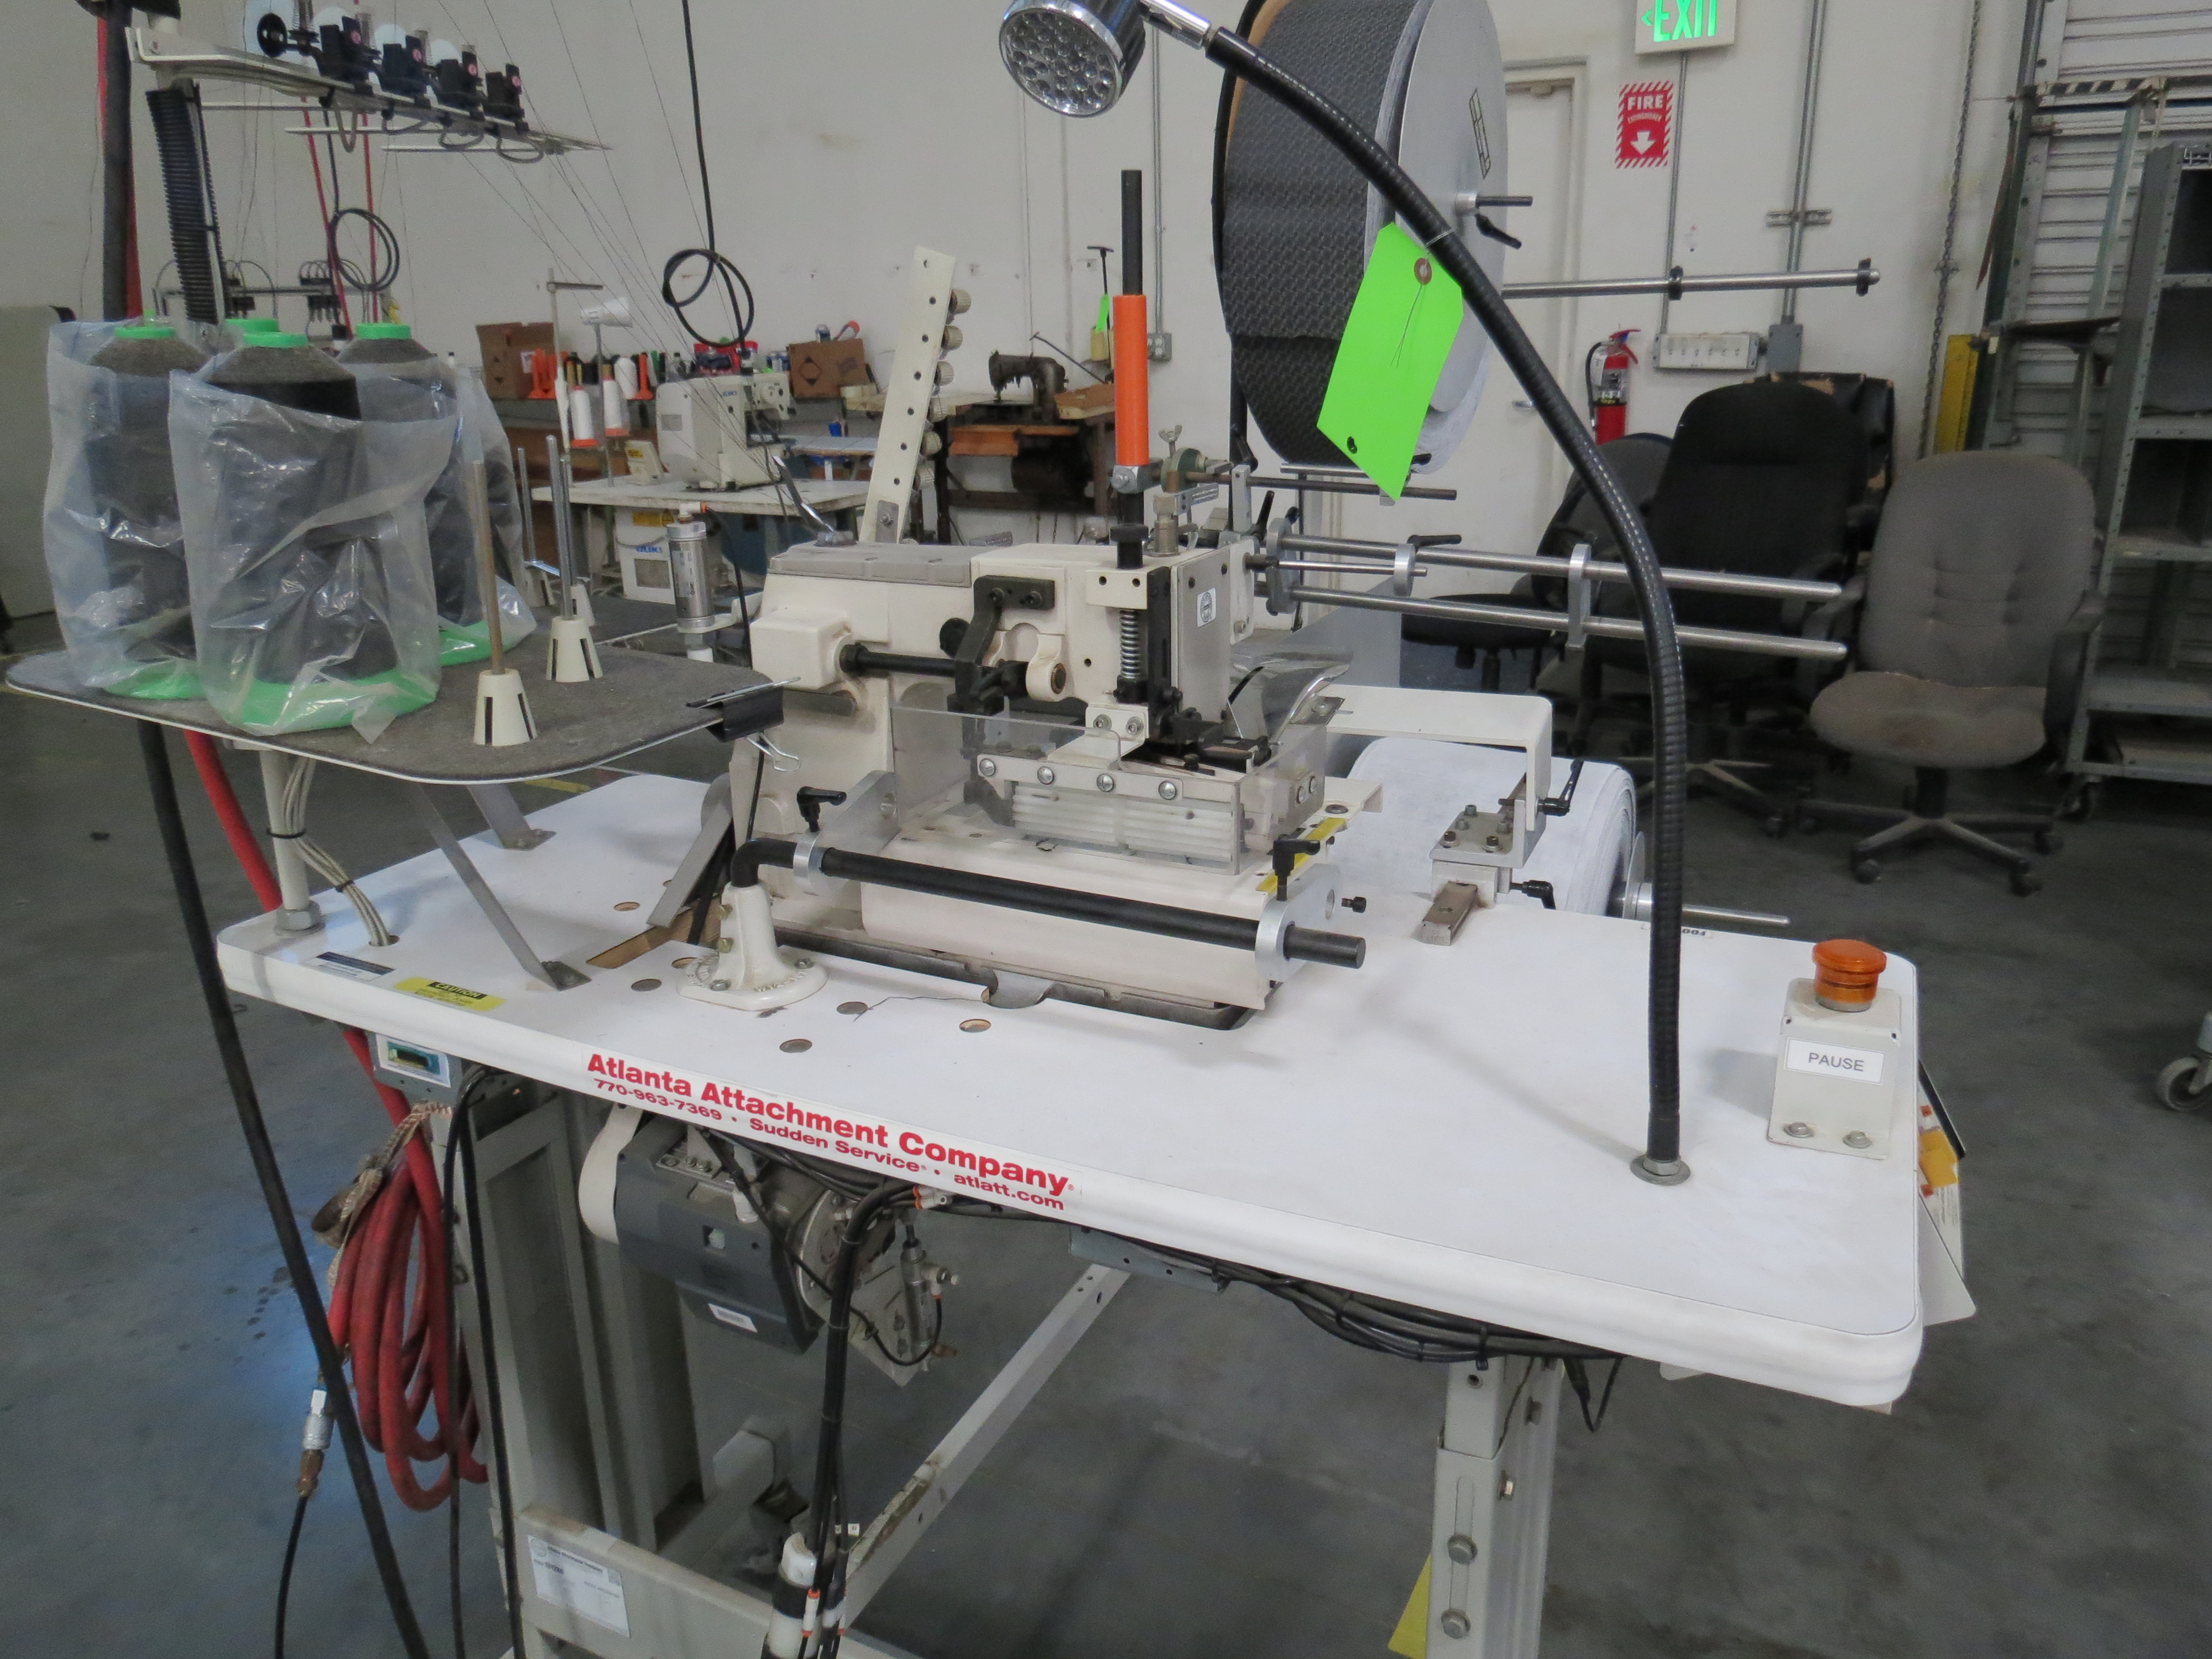 Atlanta Attachment Company 1312Border Trimmer Sewing Machine with Reel & Feeder, 220V, SN: - Image 3 of 8